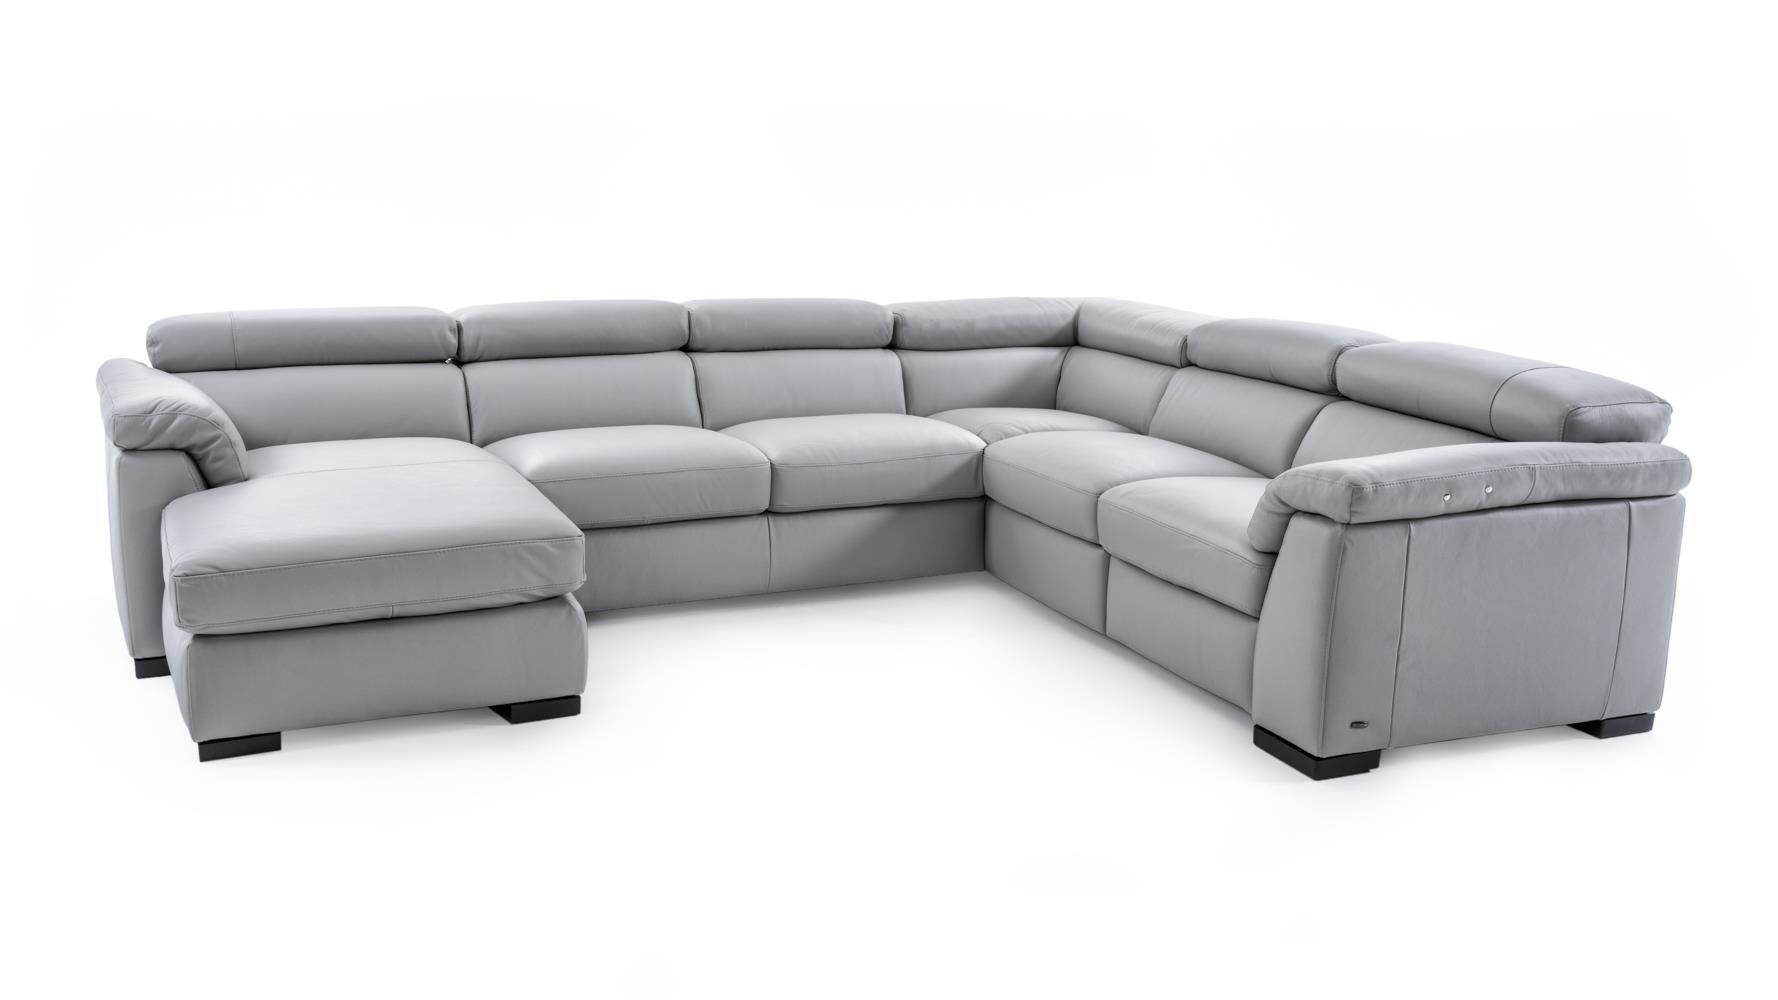 Natuzzi Editions B634 Contemporary Leather Reclining Sectional pertaining to Natuzzi Microfiber Sectional Sofas